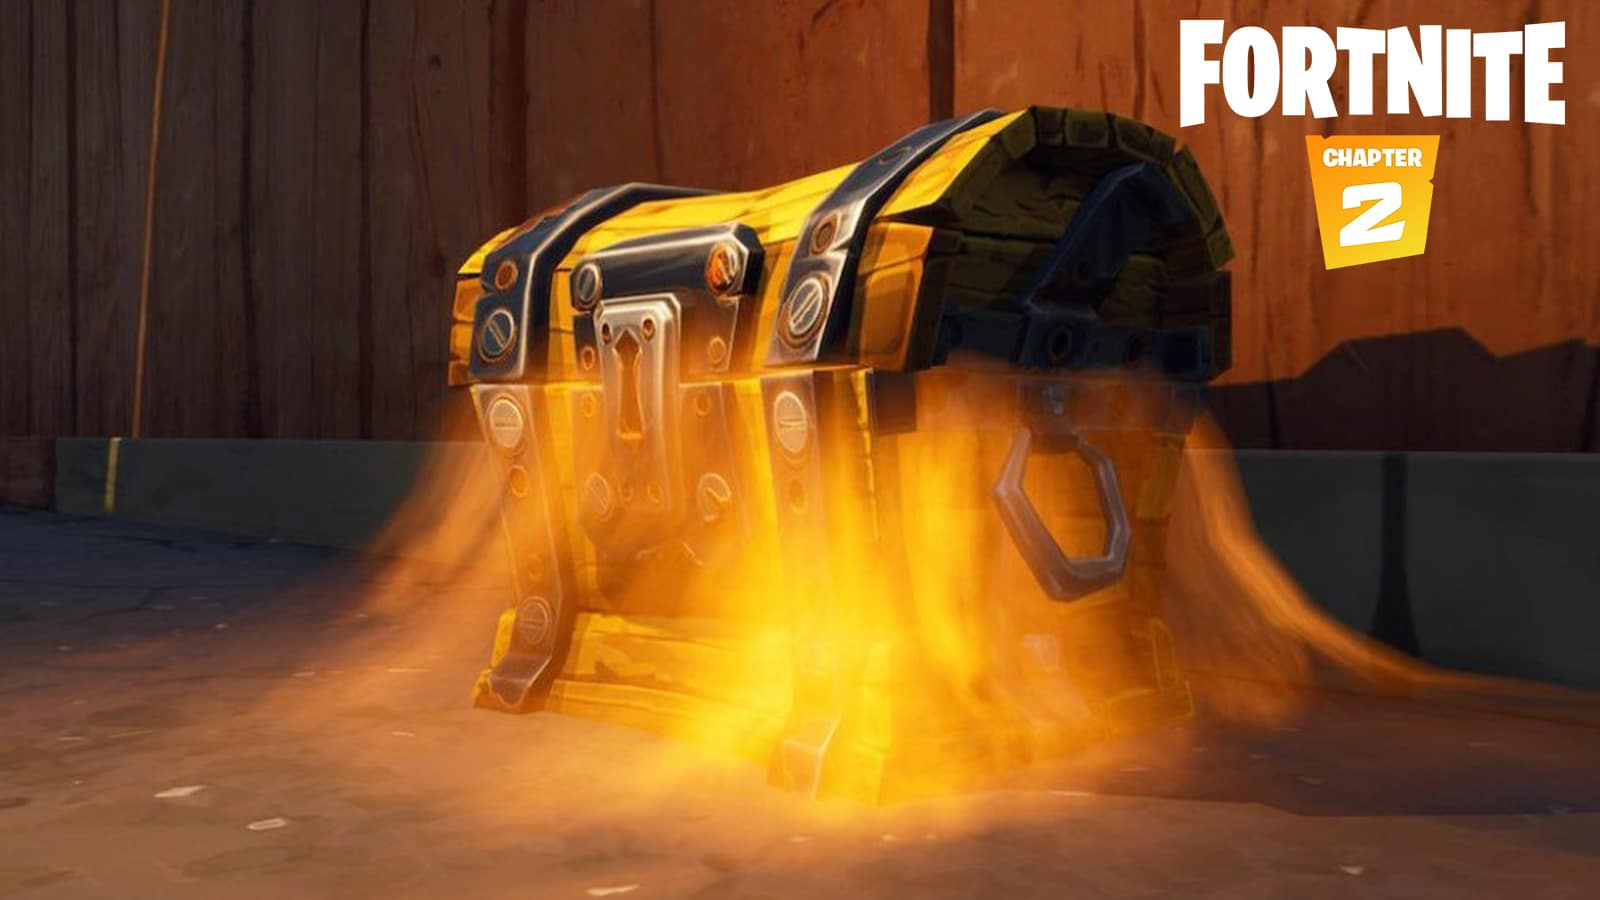 Fortnite Chapter 2 chest spawns